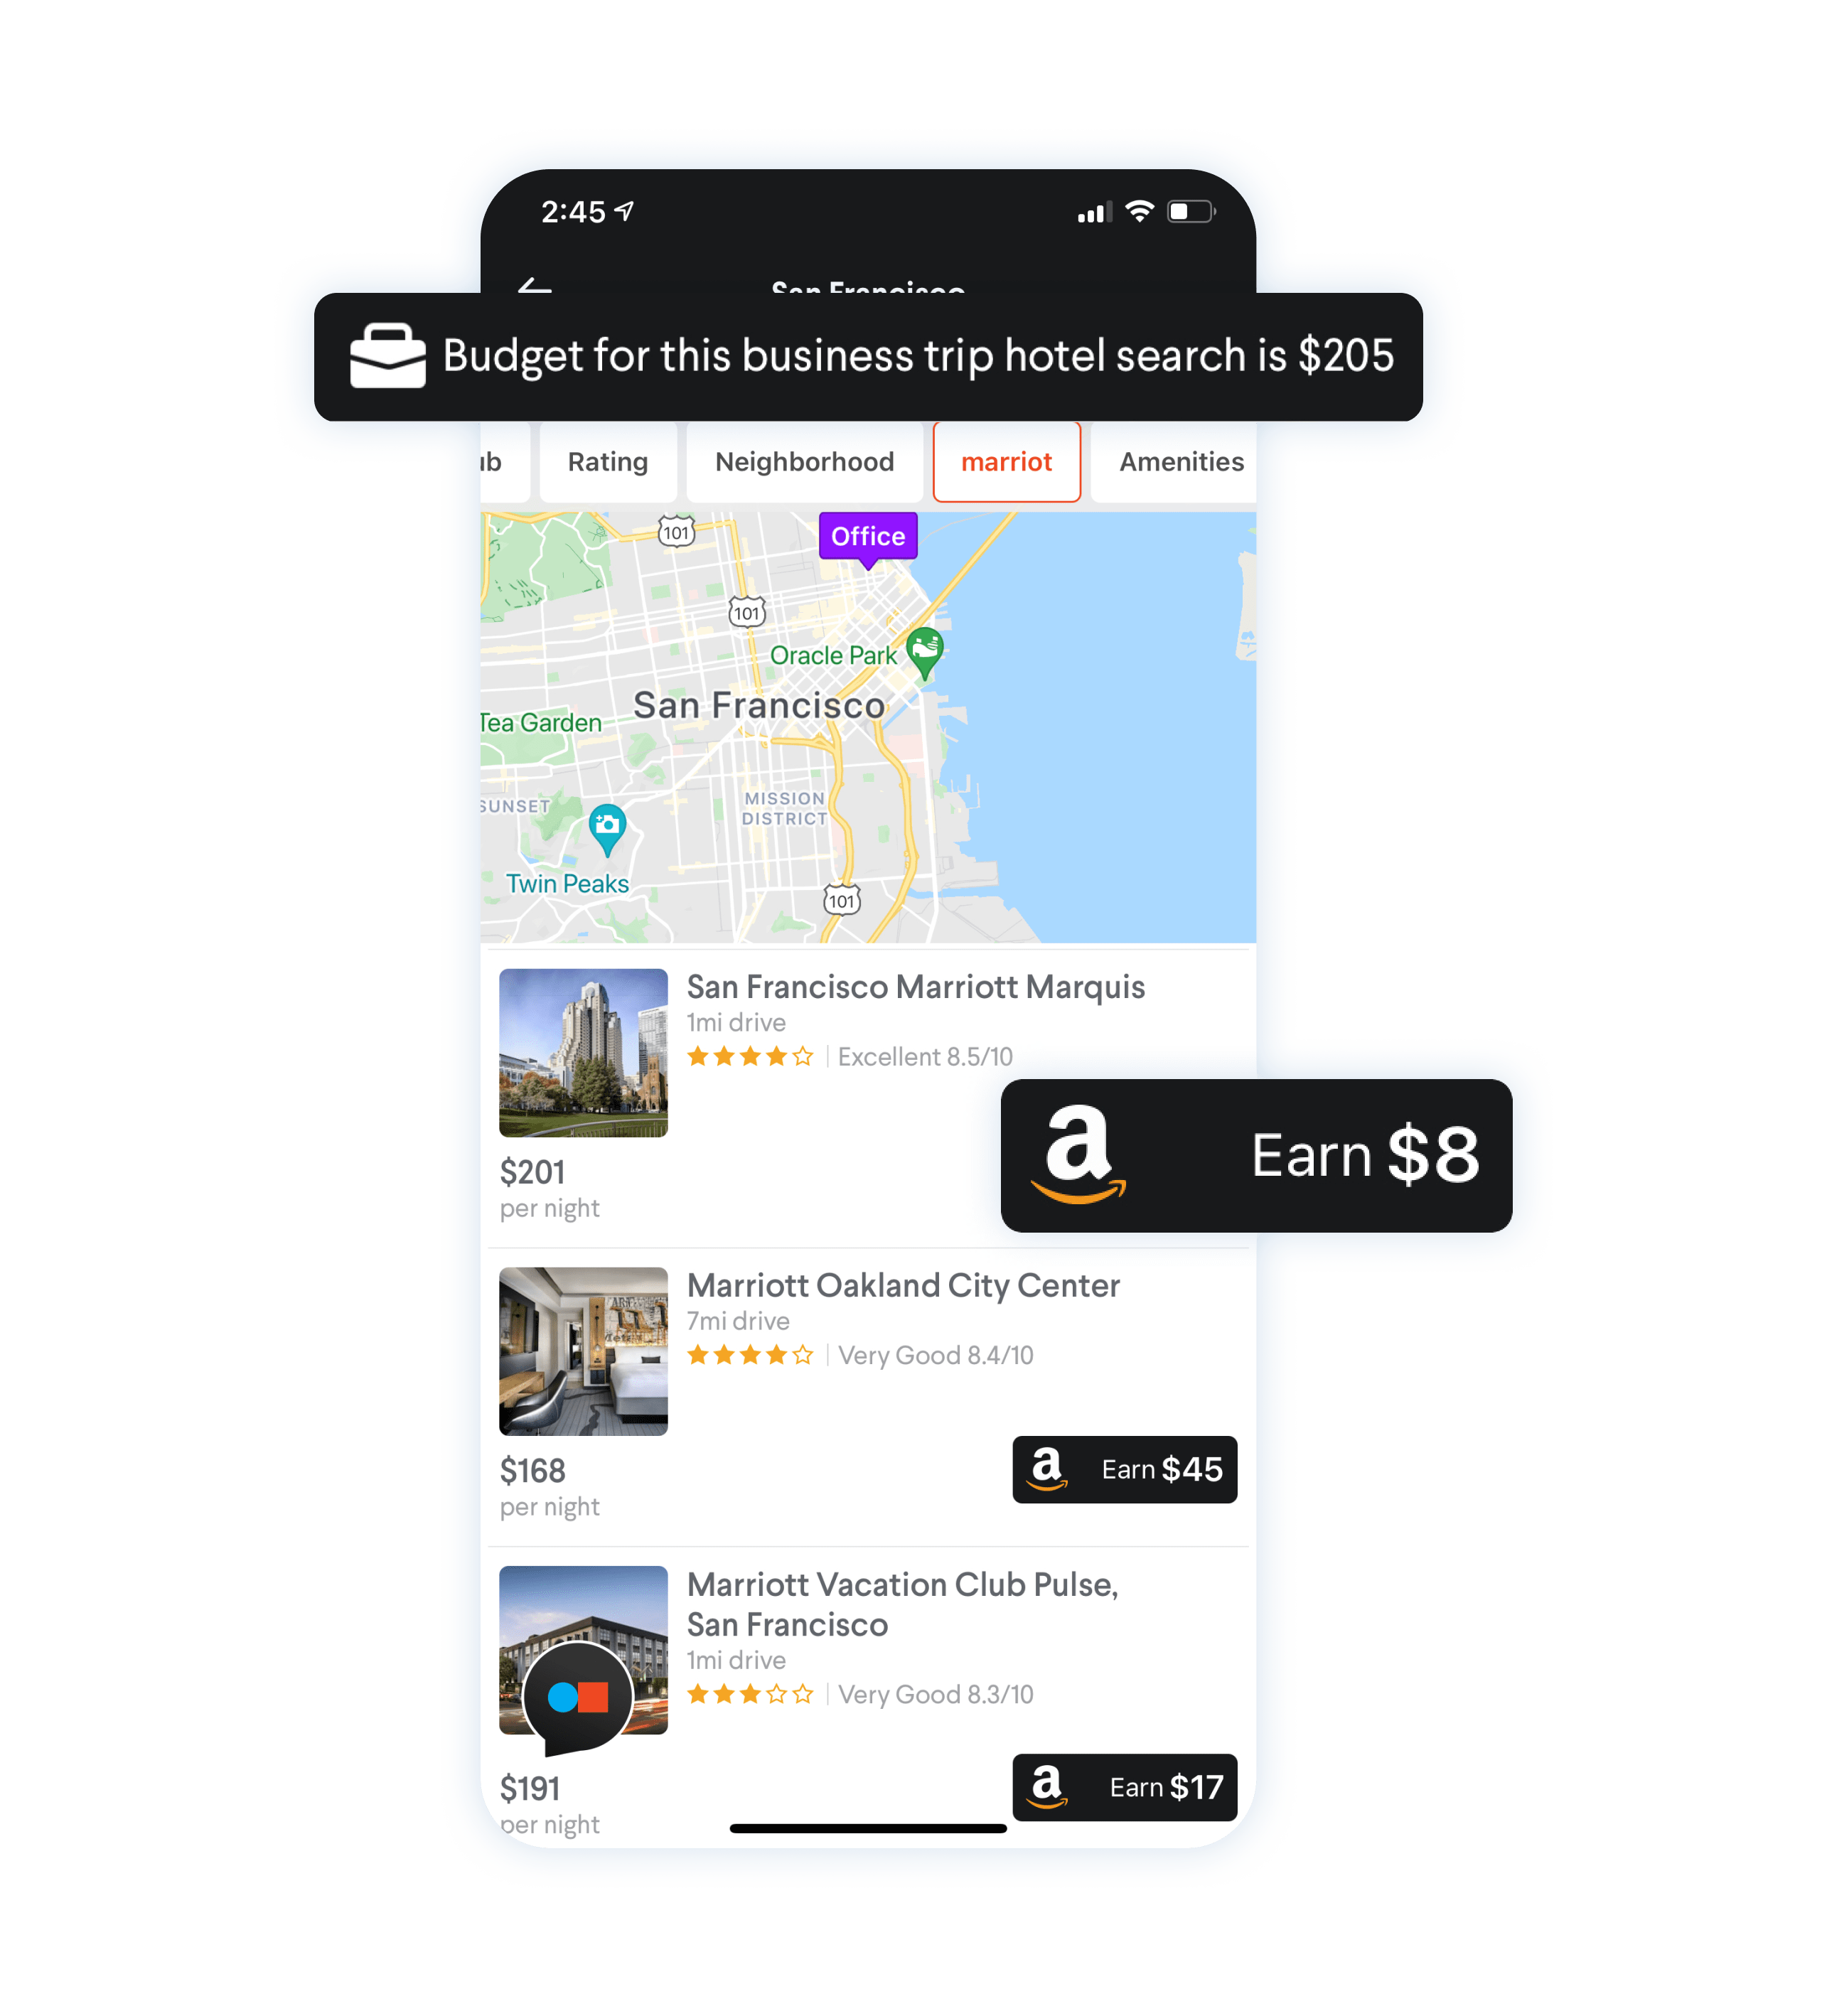 Image of TripActions price-to-beat feature, which rewards travelers for making lower cost bookings and provides companies with greater savings.